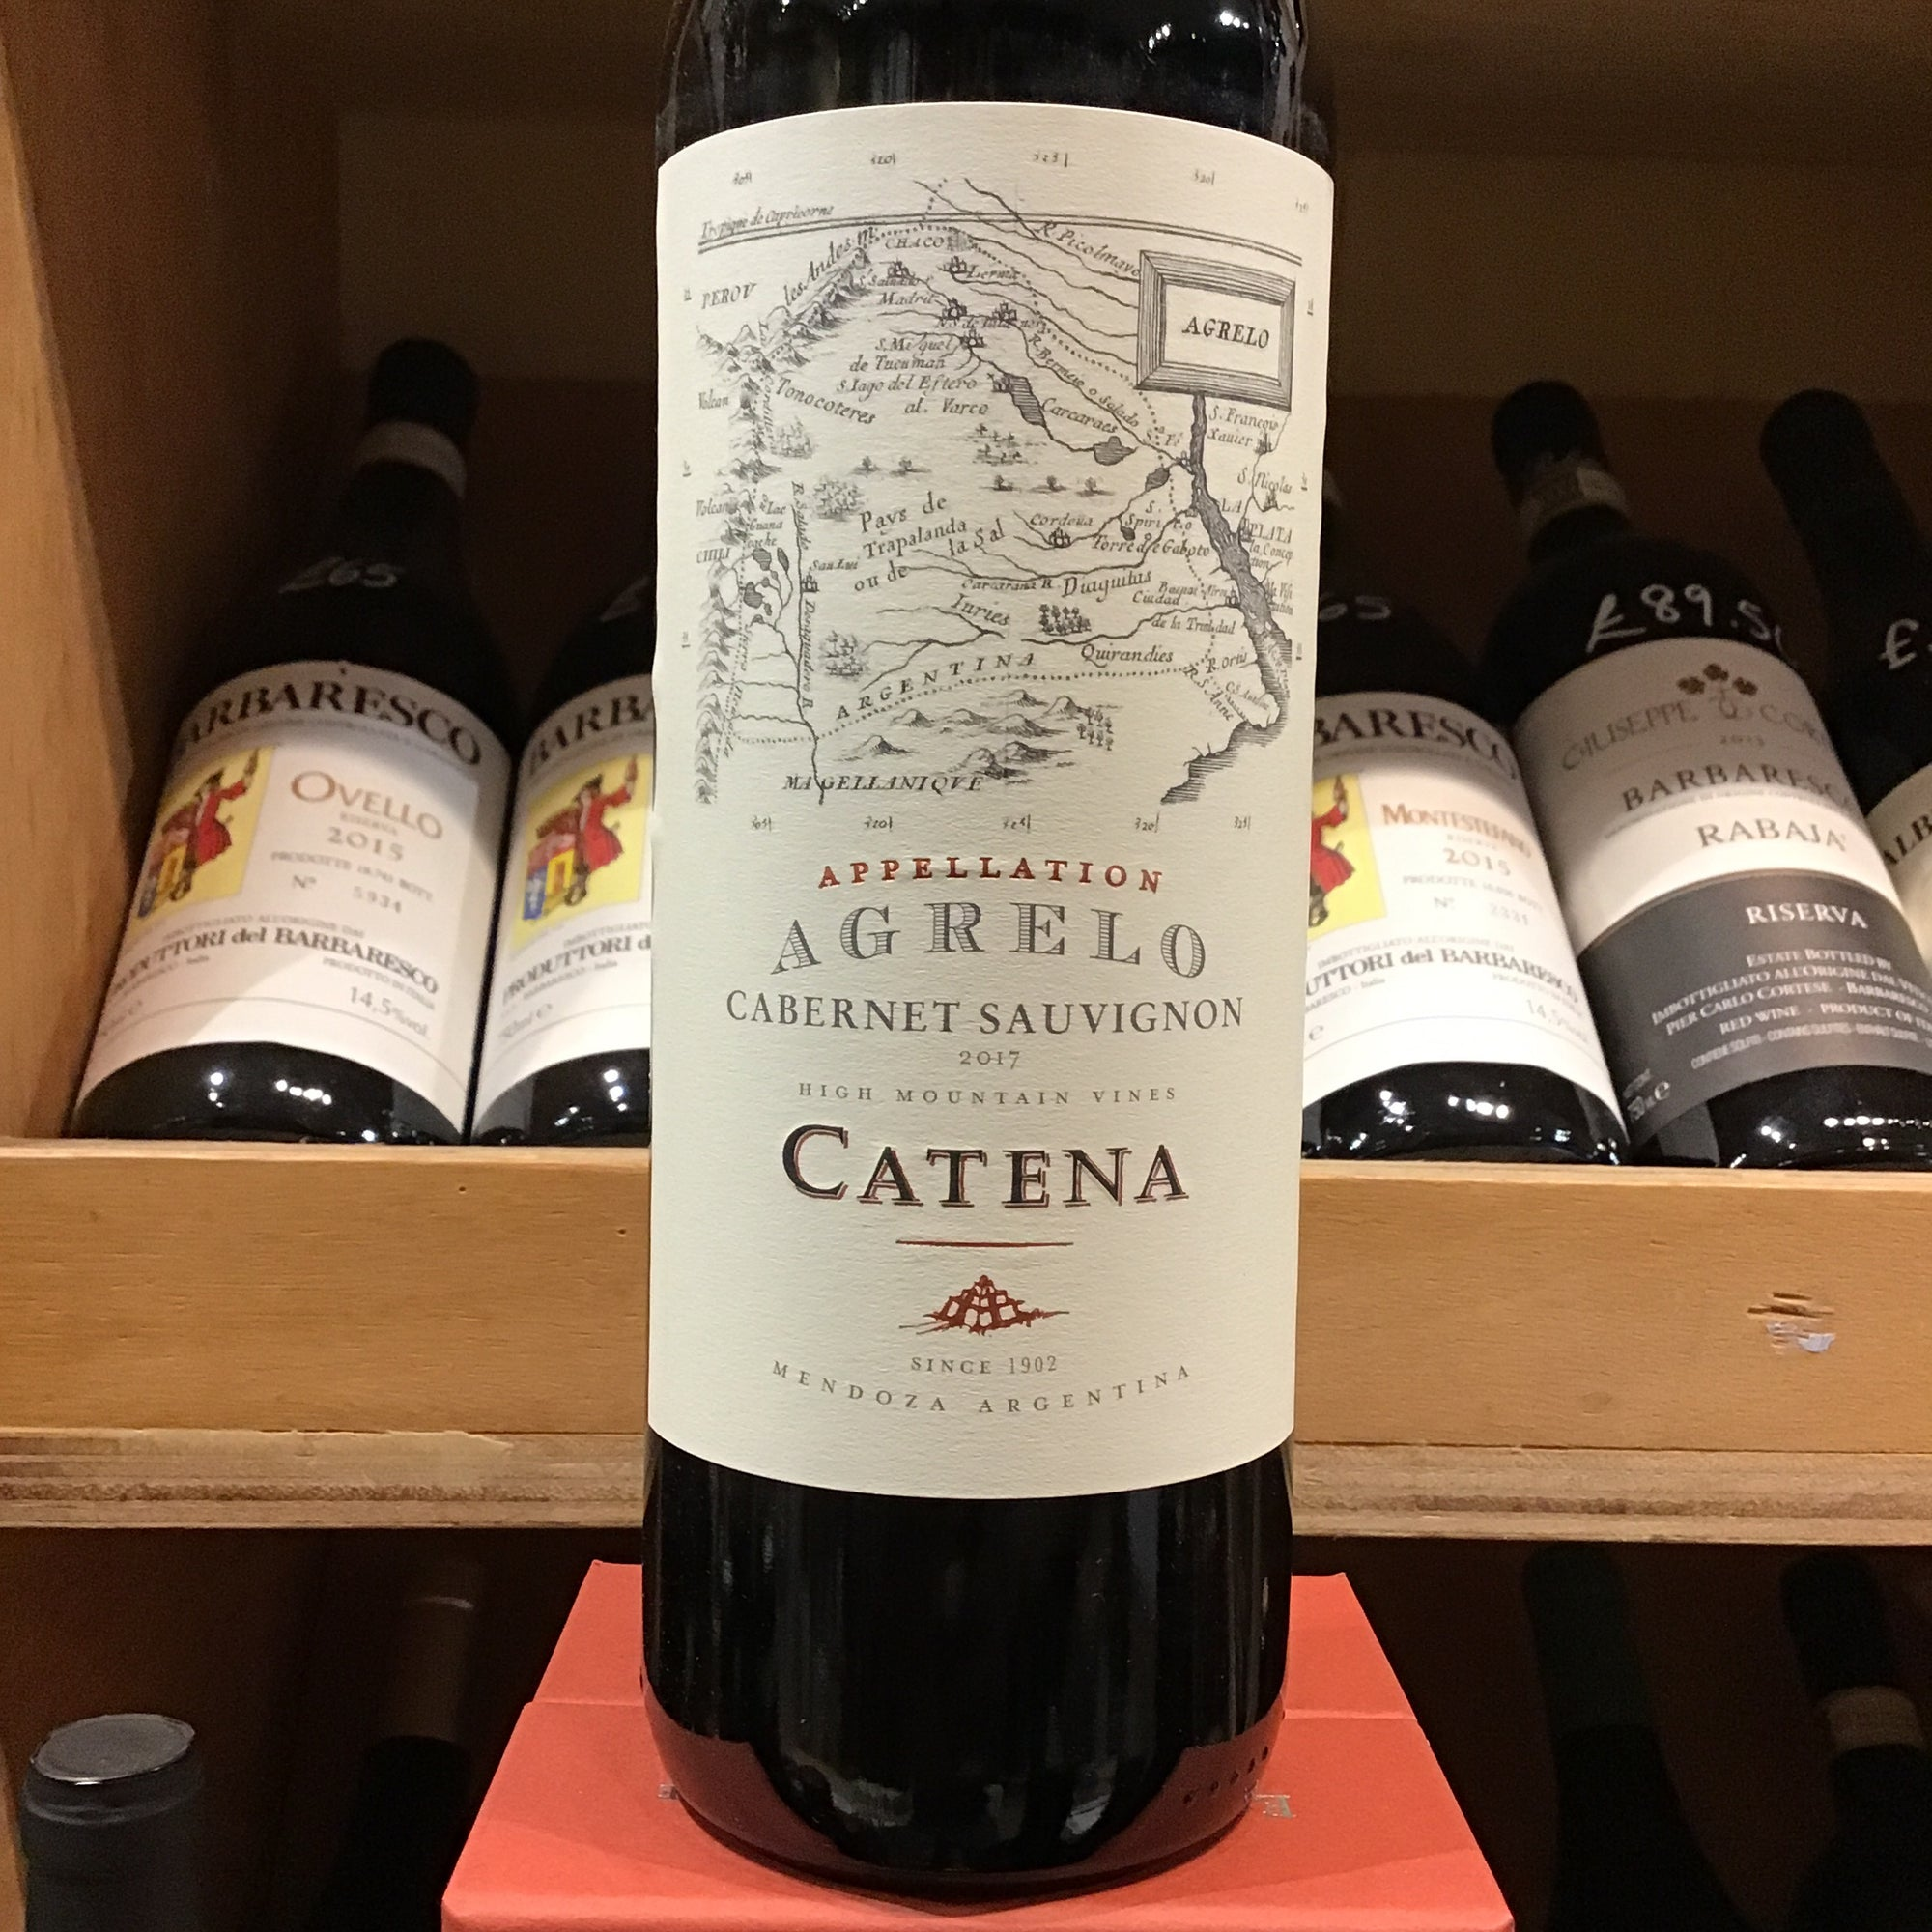 Catena Appellation Agrelo Cabernet Sauvignon 2017